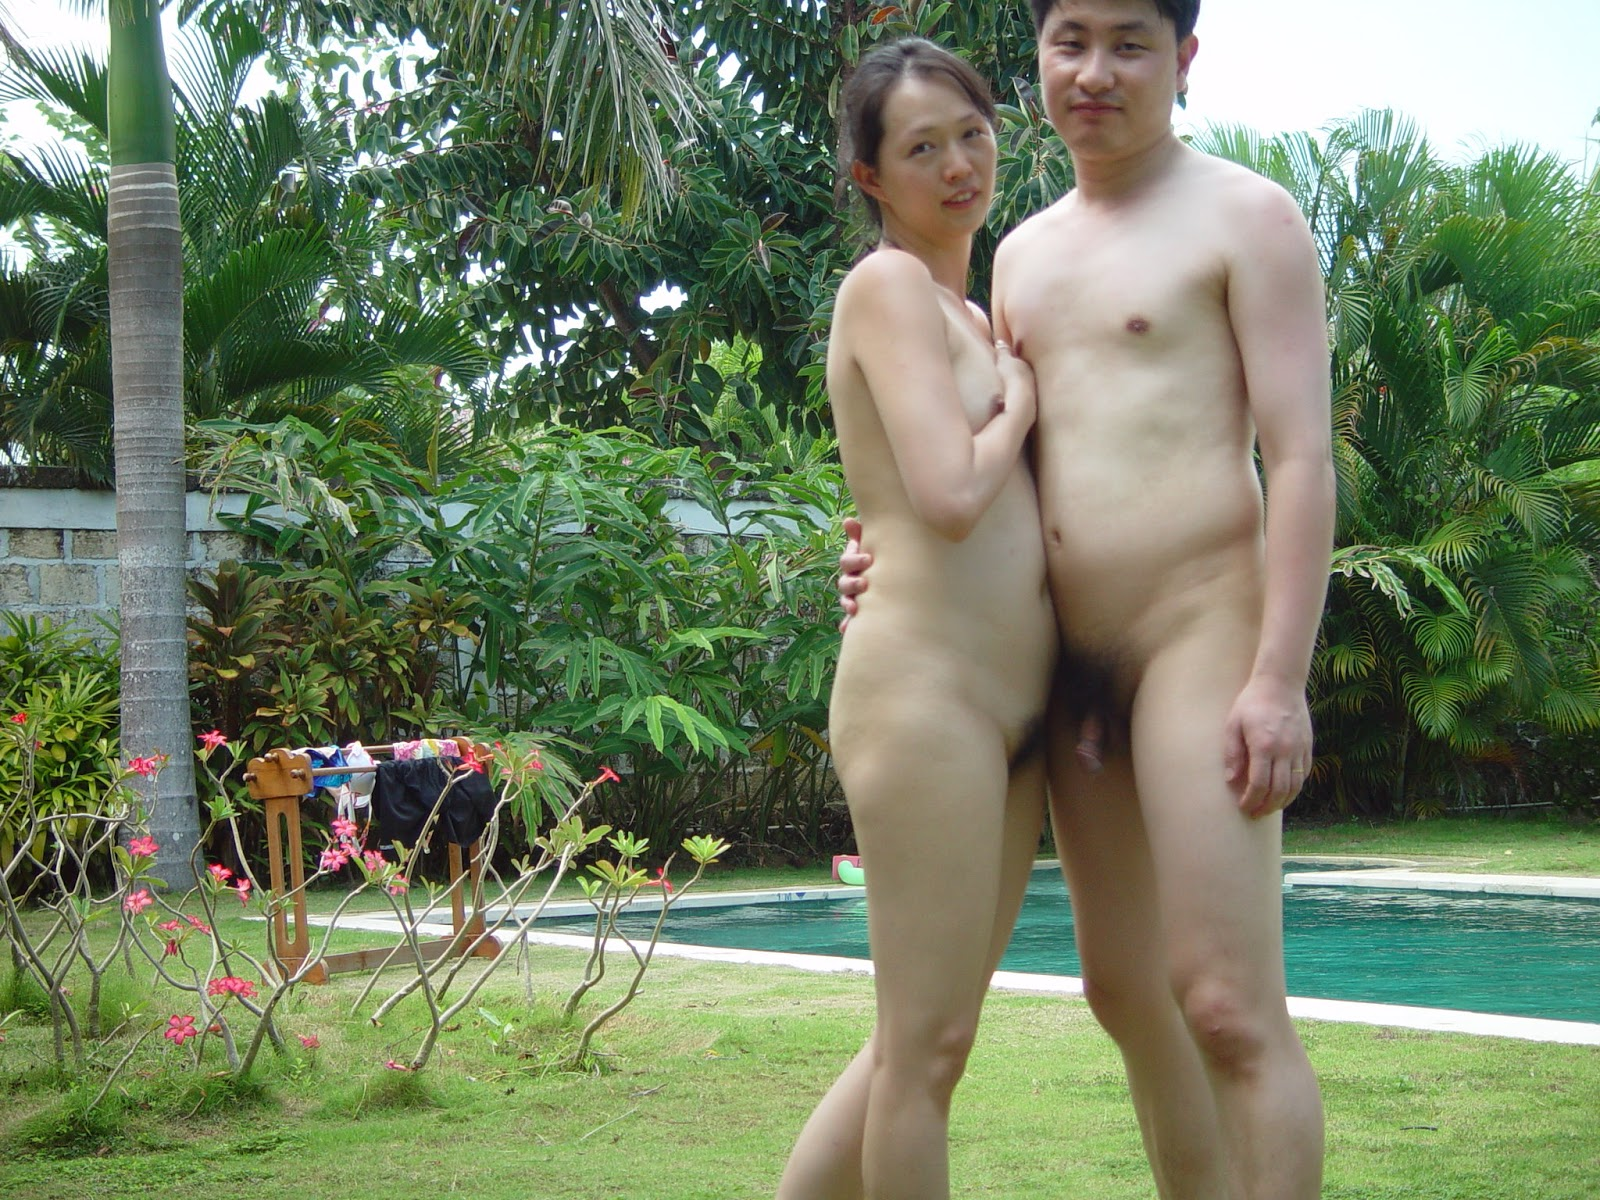 Honeymoons pregnant naked photos variant possible